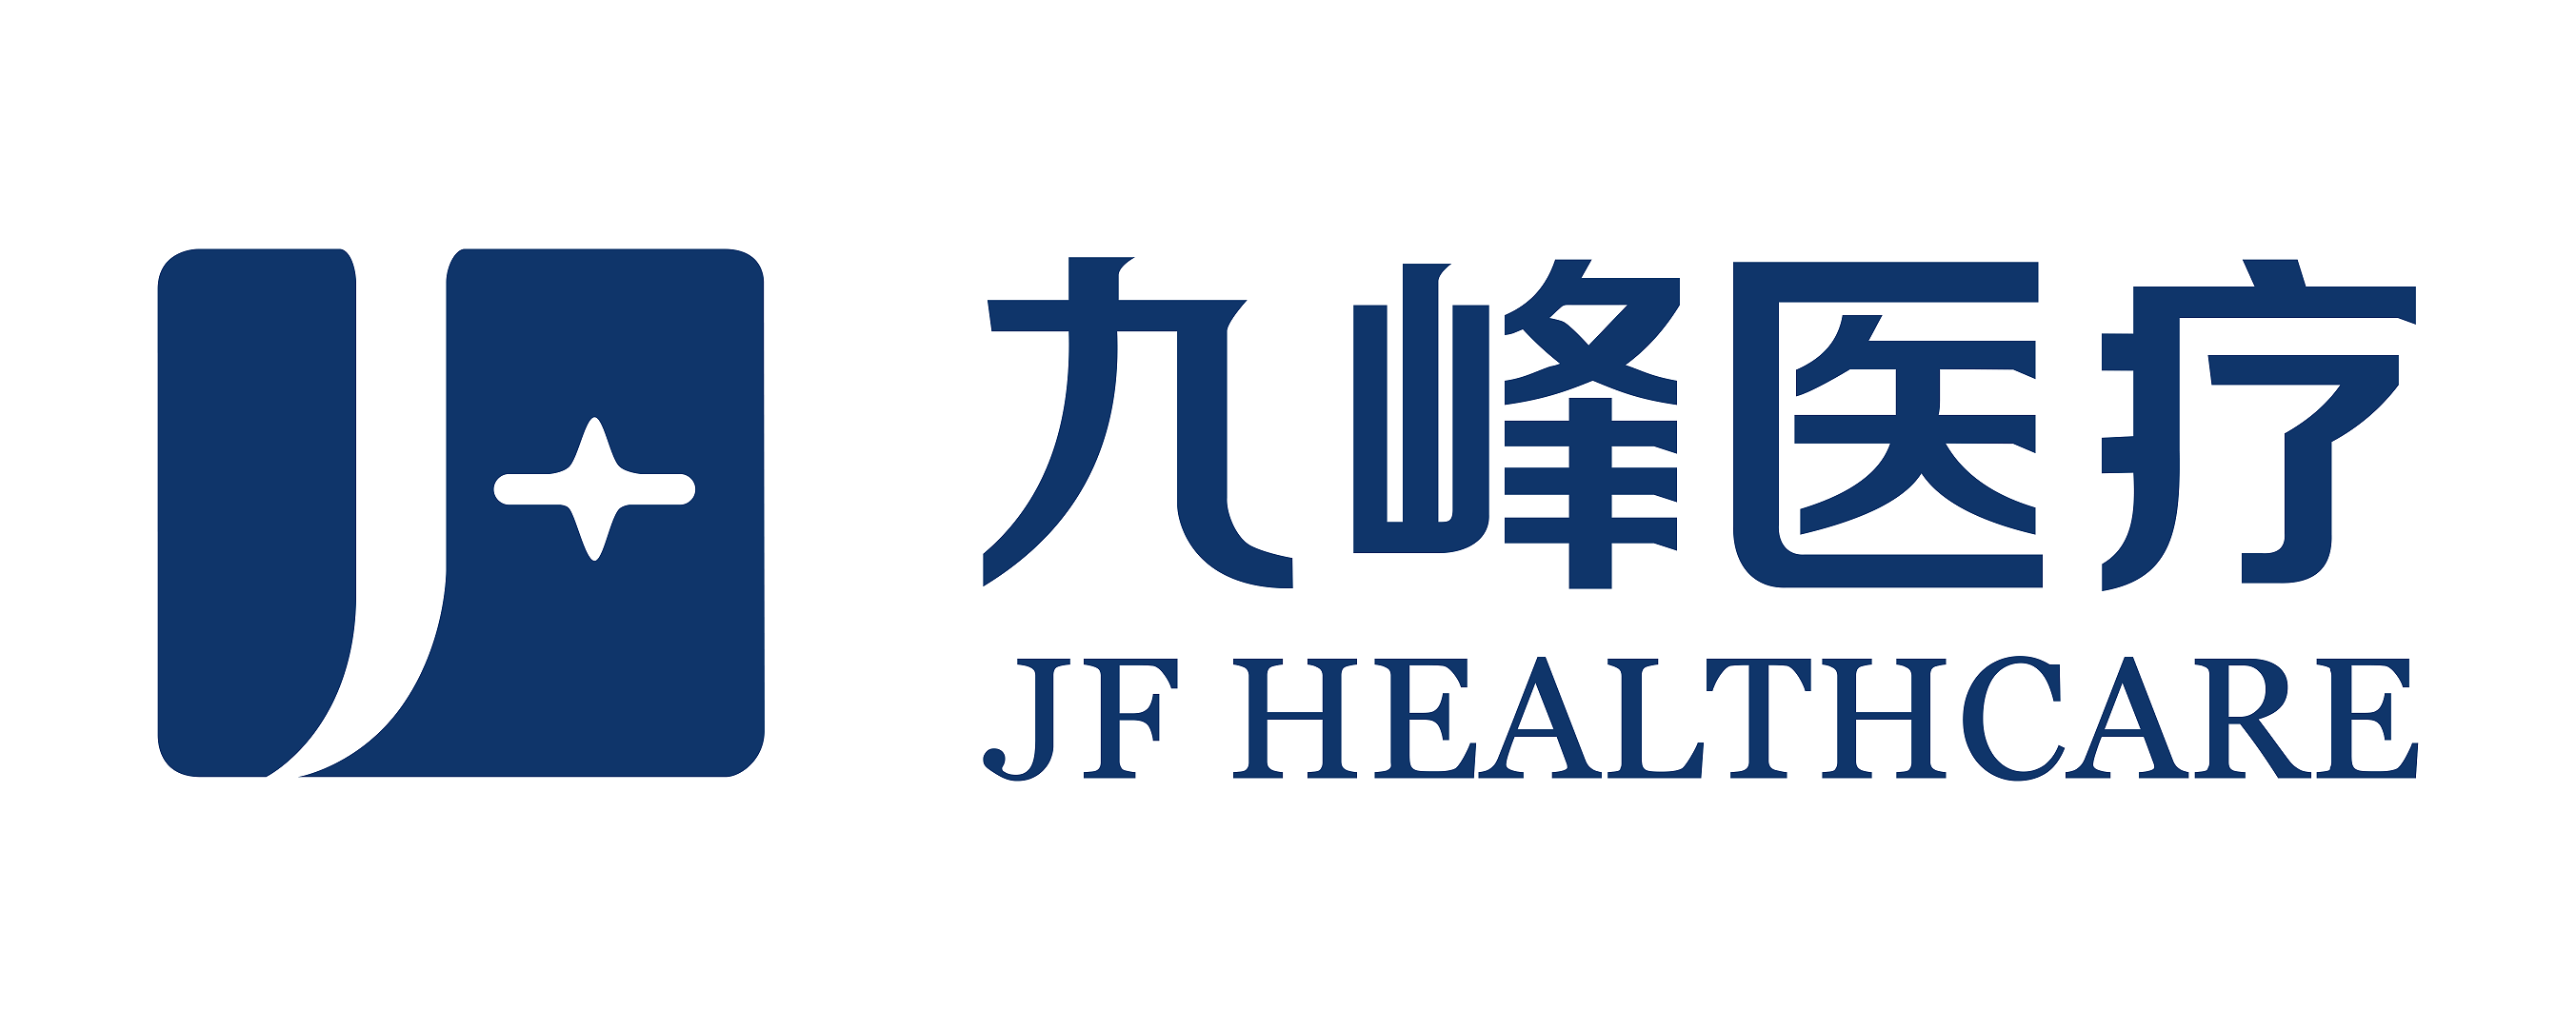 JF Heathcare is excited to participate in MICCAI 2019 as silver sponsor